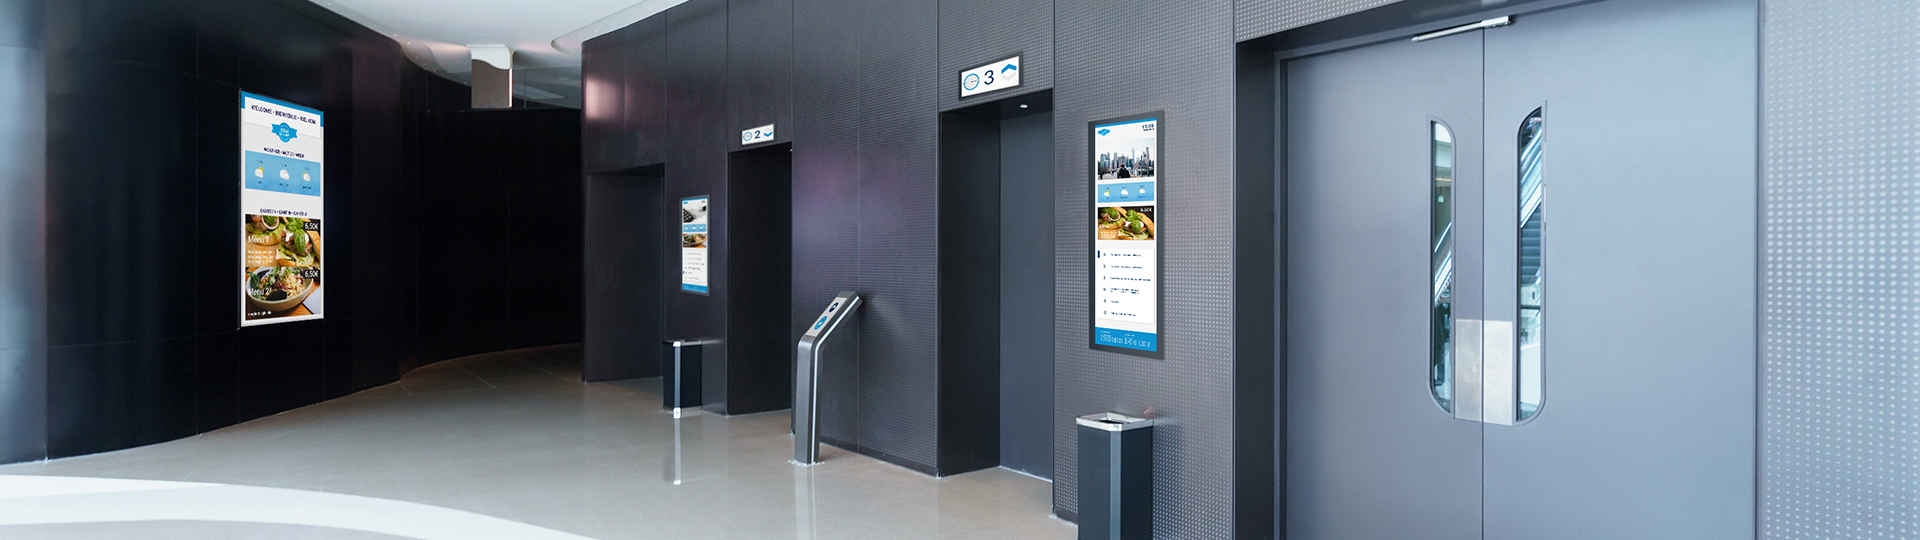 flexyPage displays for office buildings